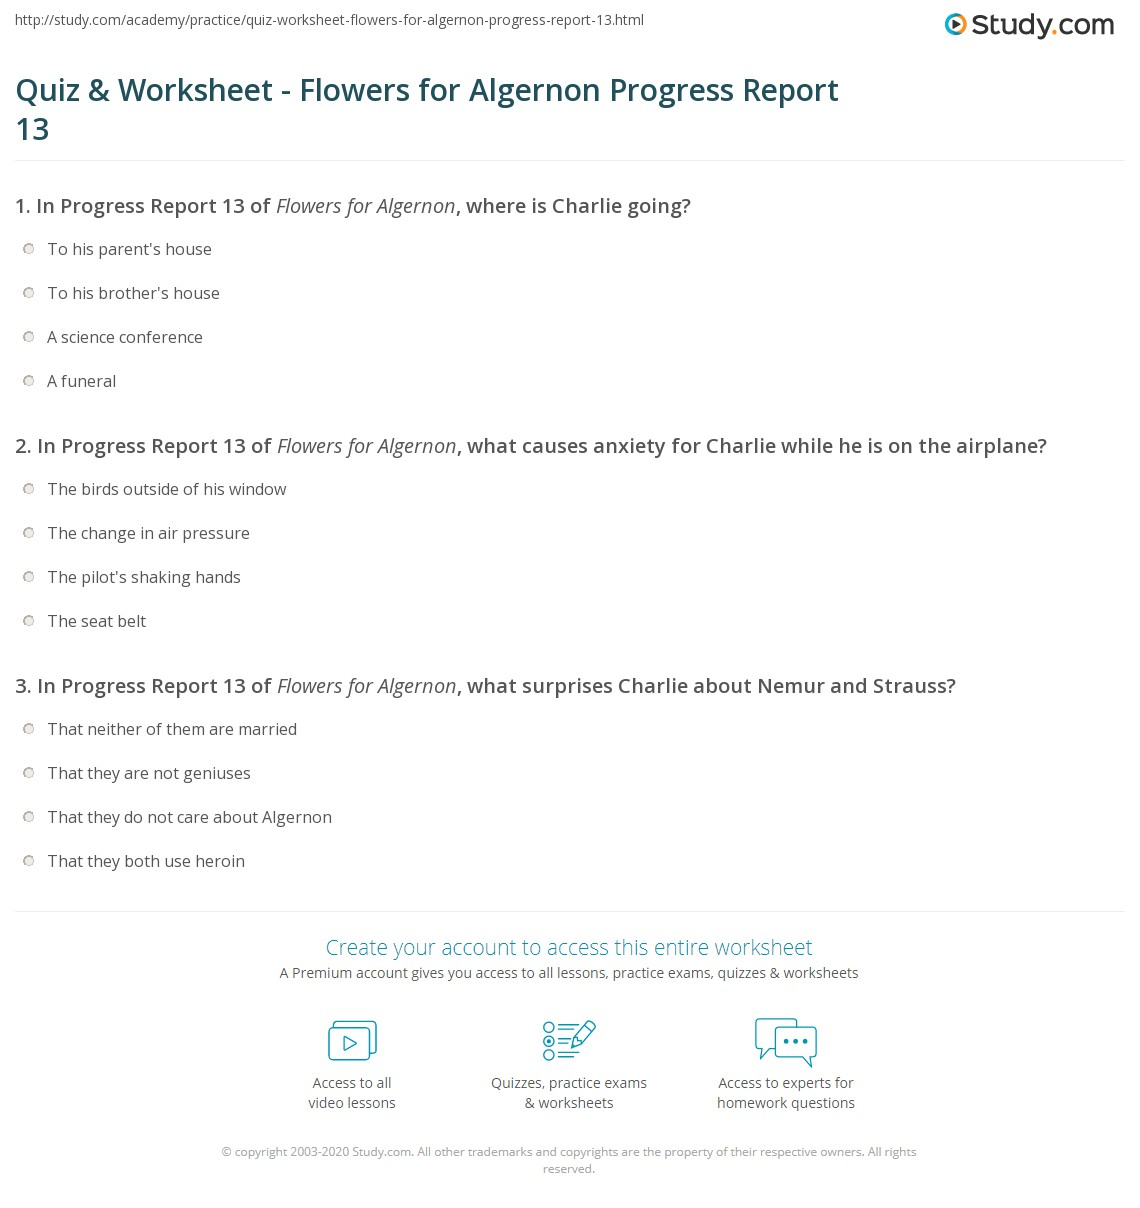 quiz worksheet flowers for algernon progress report 13 com print flowers for algernon progress report 13 summary worksheet